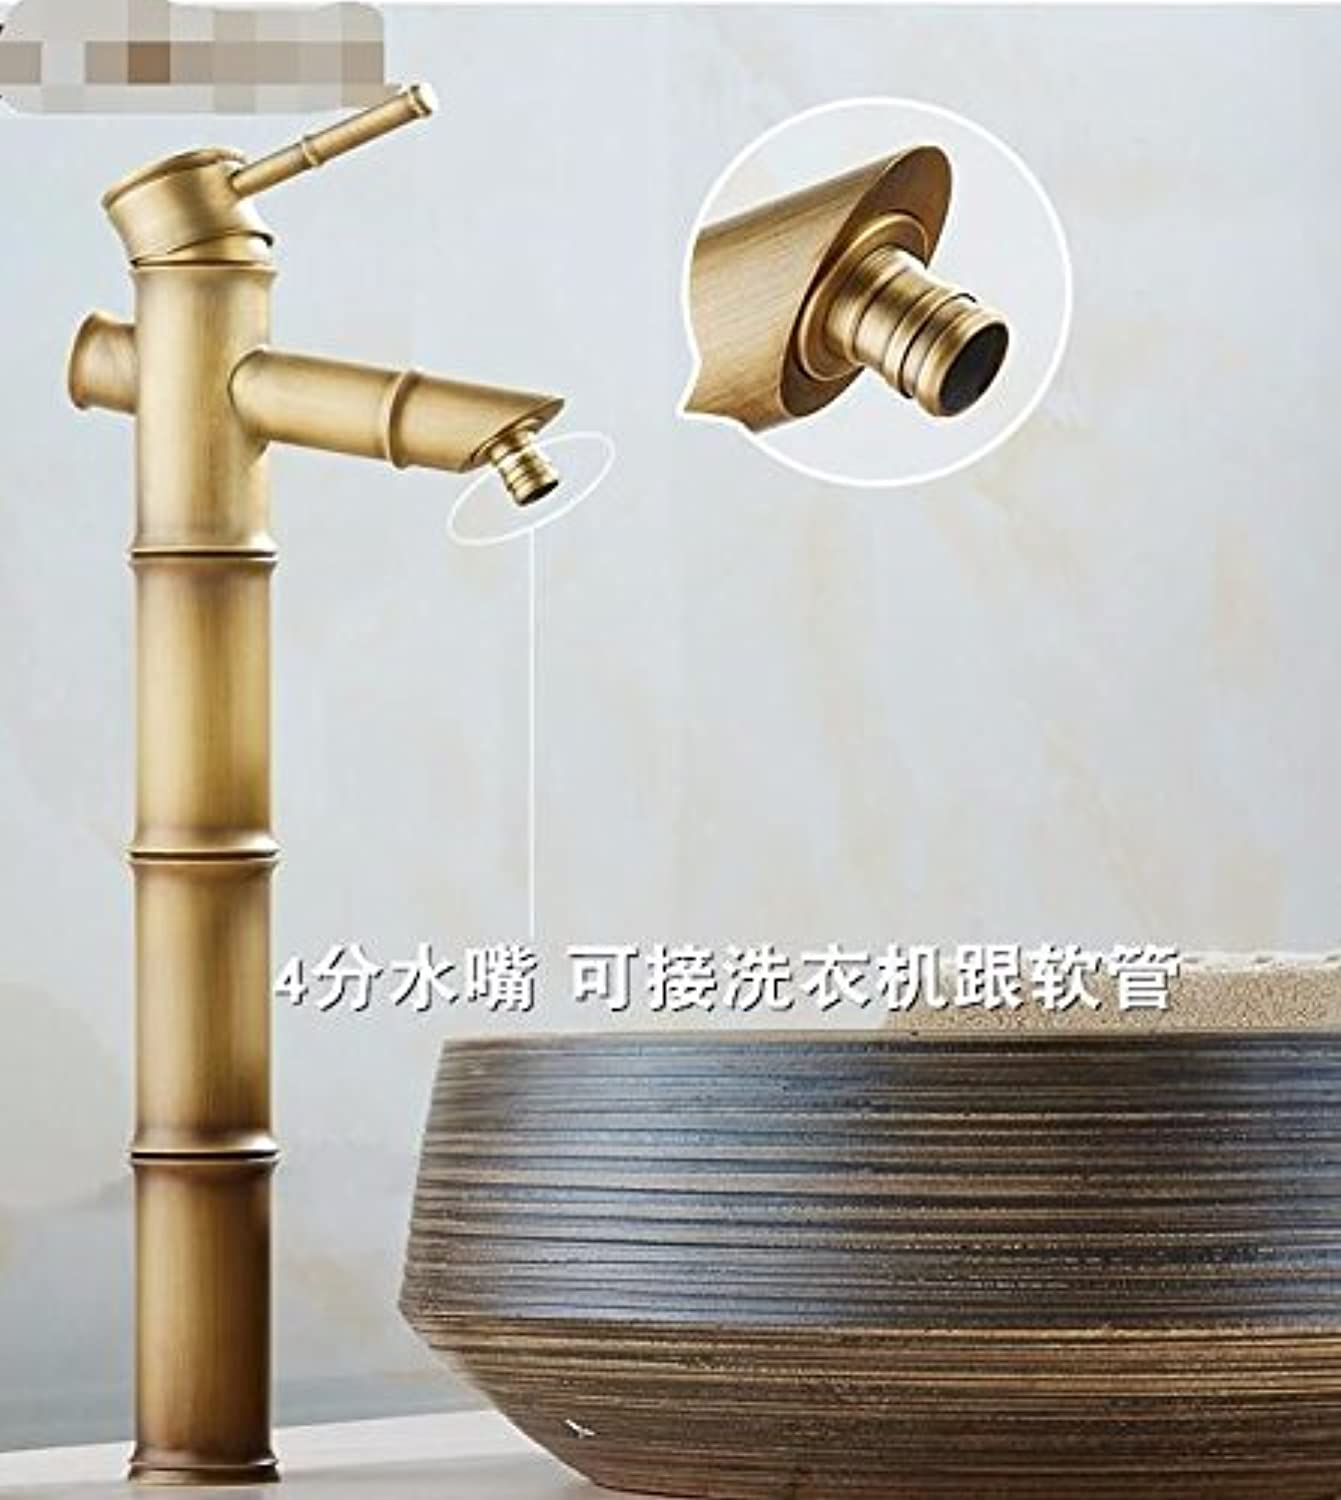 ETERNAL QUALITY Bathroom Sink Basin Tap Tap Tap Brass Mixer Tap Washroom Mixer Faucet Antique basin faucet antique solid brass basin faucet basin classic Bamboo Arts Festival and 458a86